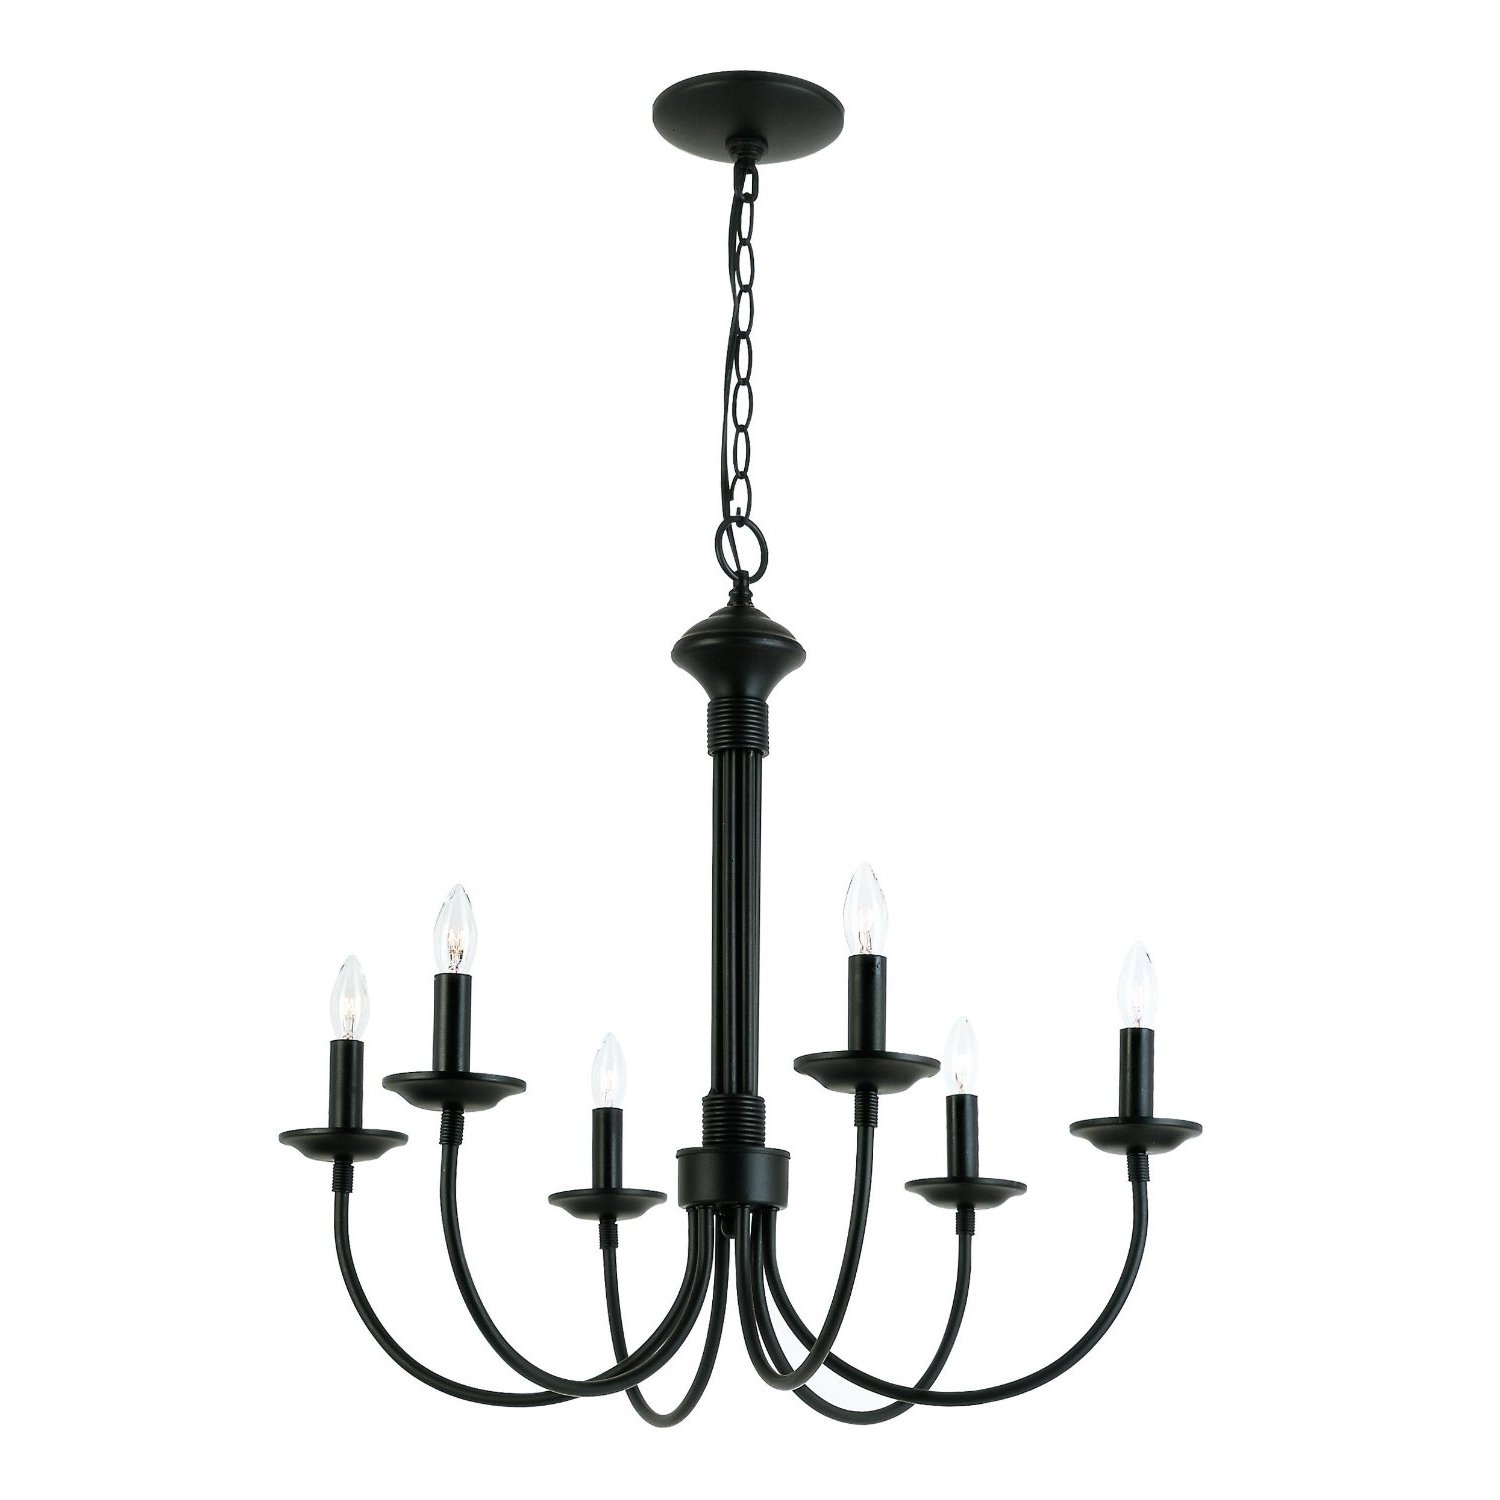 Charlton Home Blue Heron 6 Light Candle Style Chandelier Reviews Pertaining To Candle Light Chandelier (View 3 of 15)